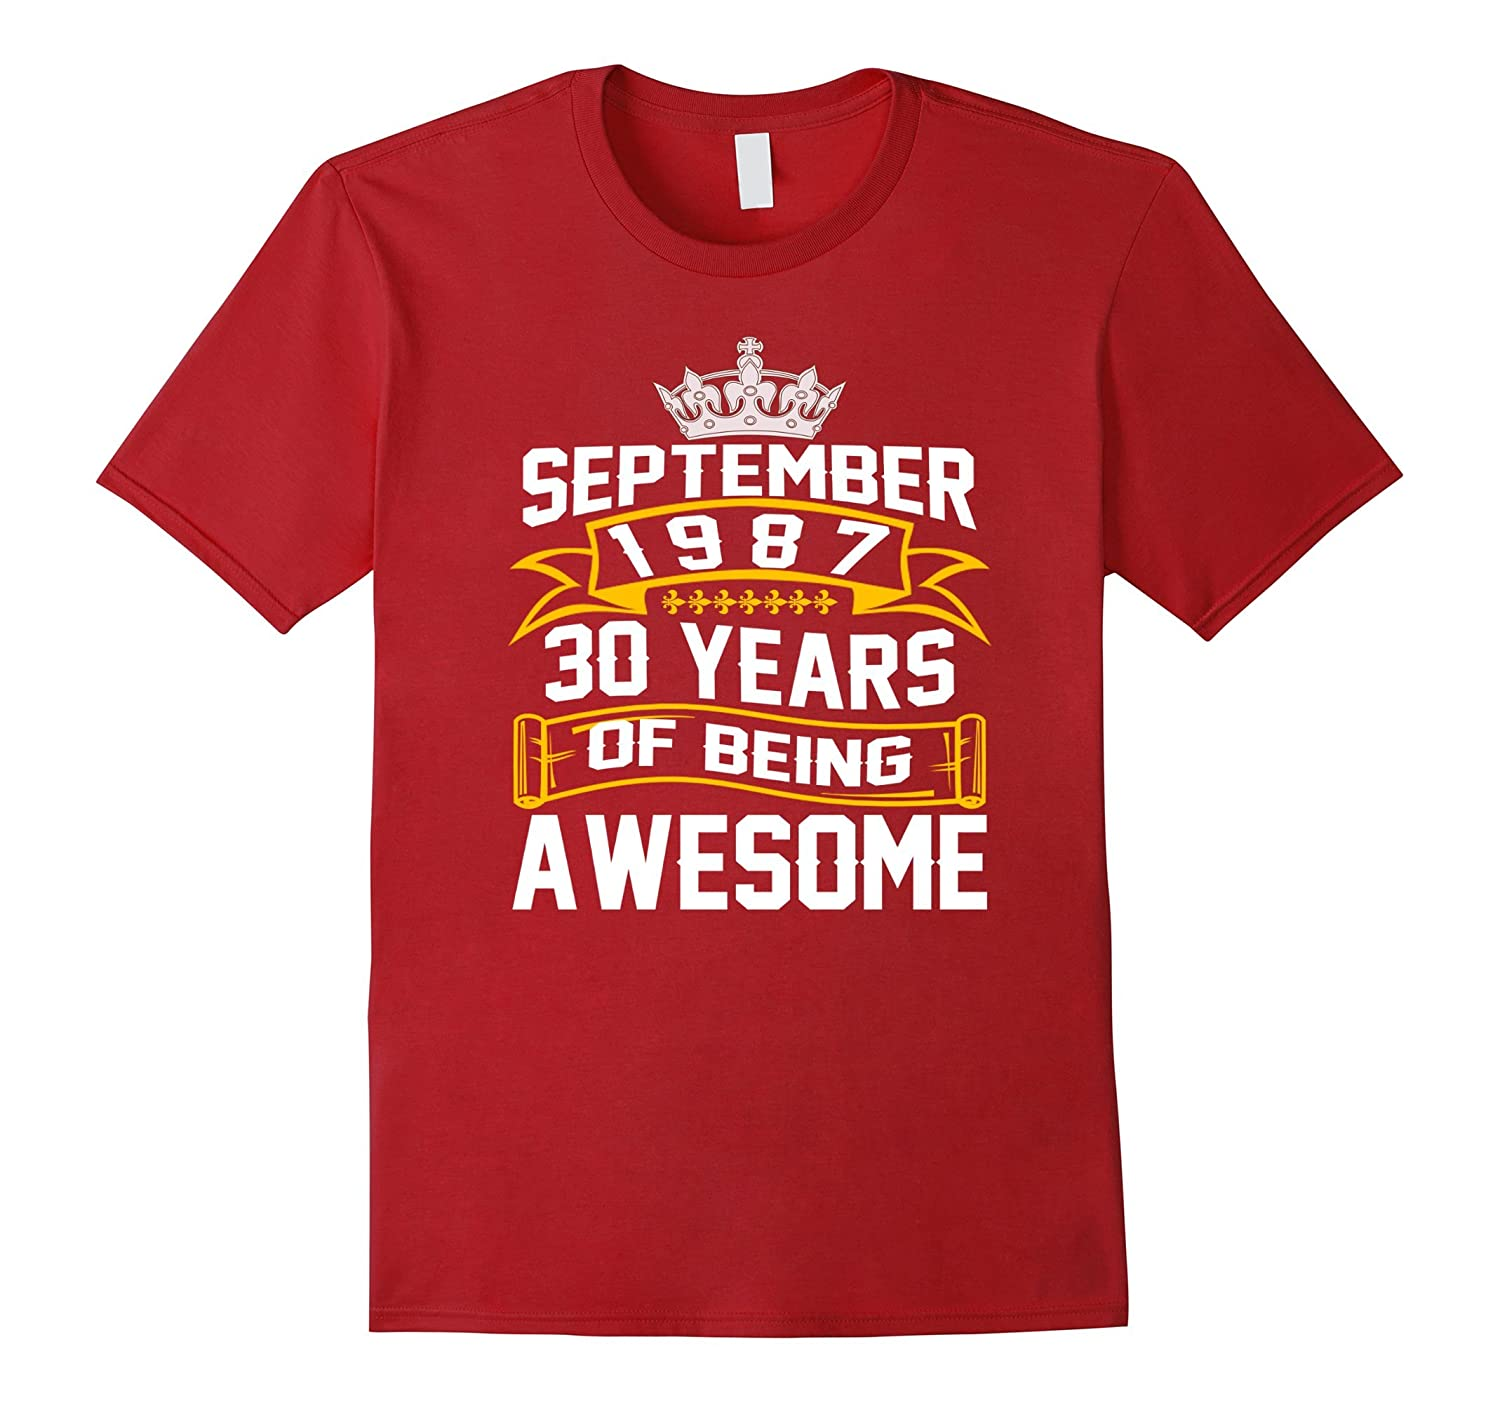 30 years of being awesome - Born in September 1987 T-Shirt-CL